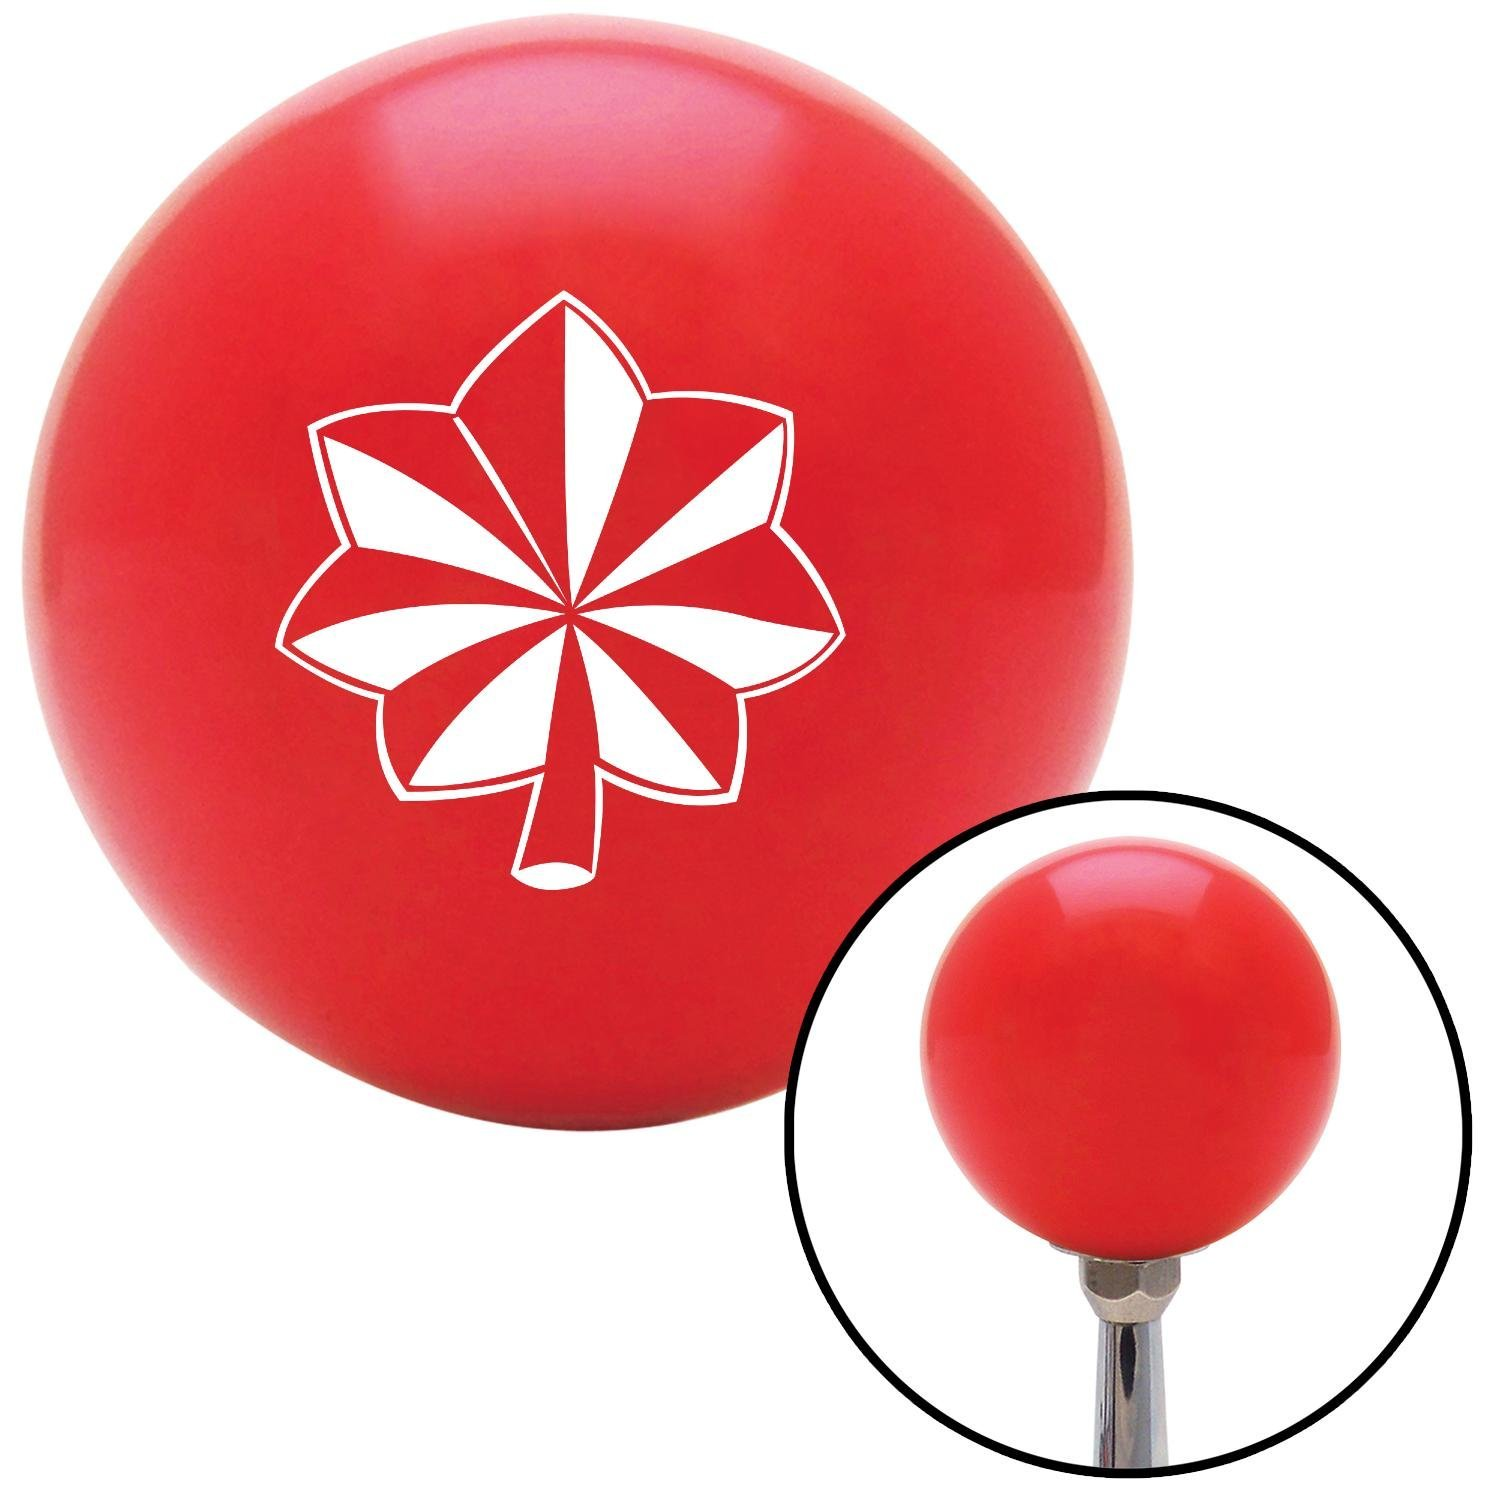 American Shifter 97641 Red Shift Knob with M16 x 1.5 Insert White Officer 04 - Major and Lt. Colonel